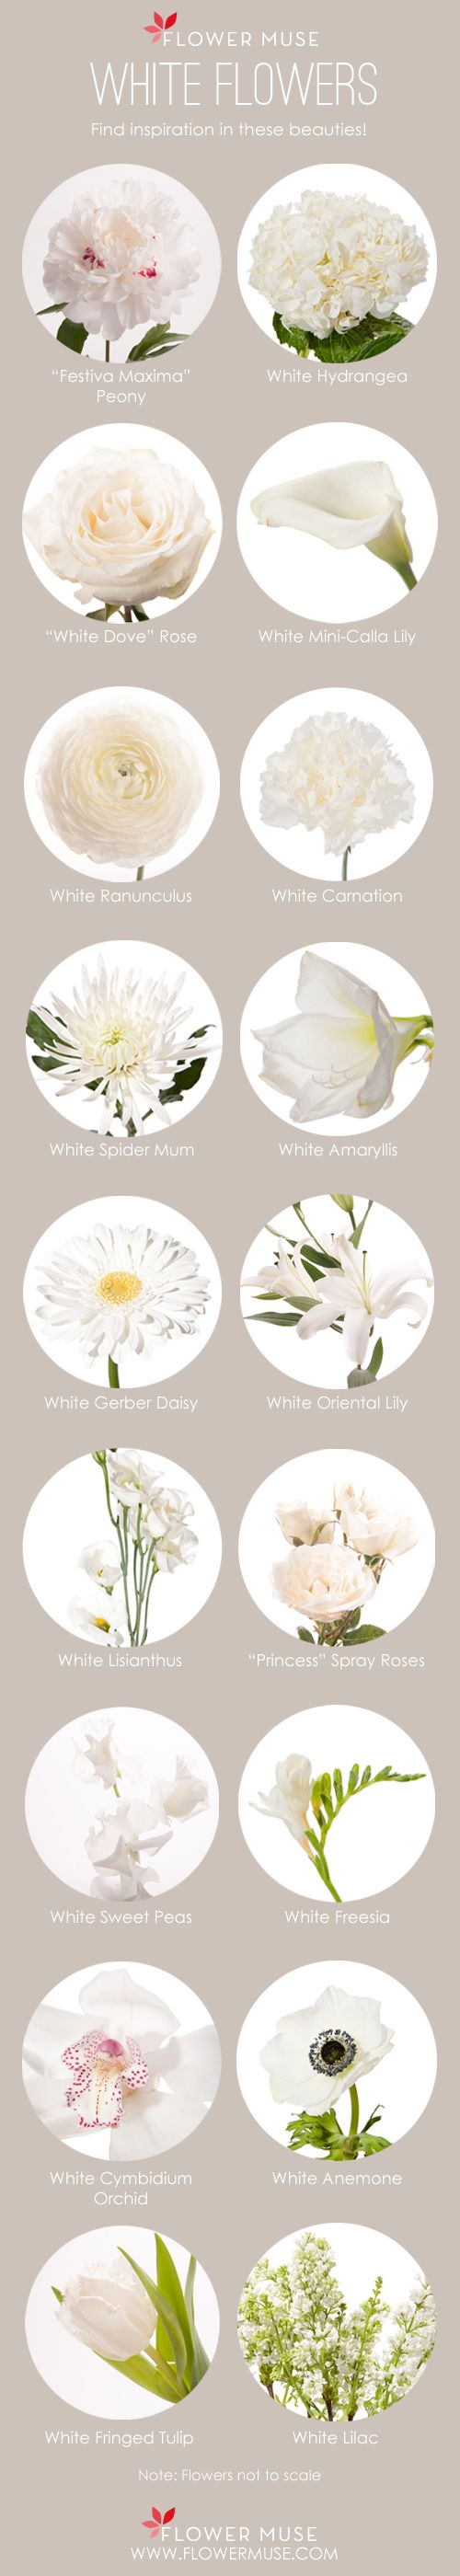 Flower Muse Our Favorite: White Flowers http://www.flowermuse.com/blog/our-favorite-white-flowers/: